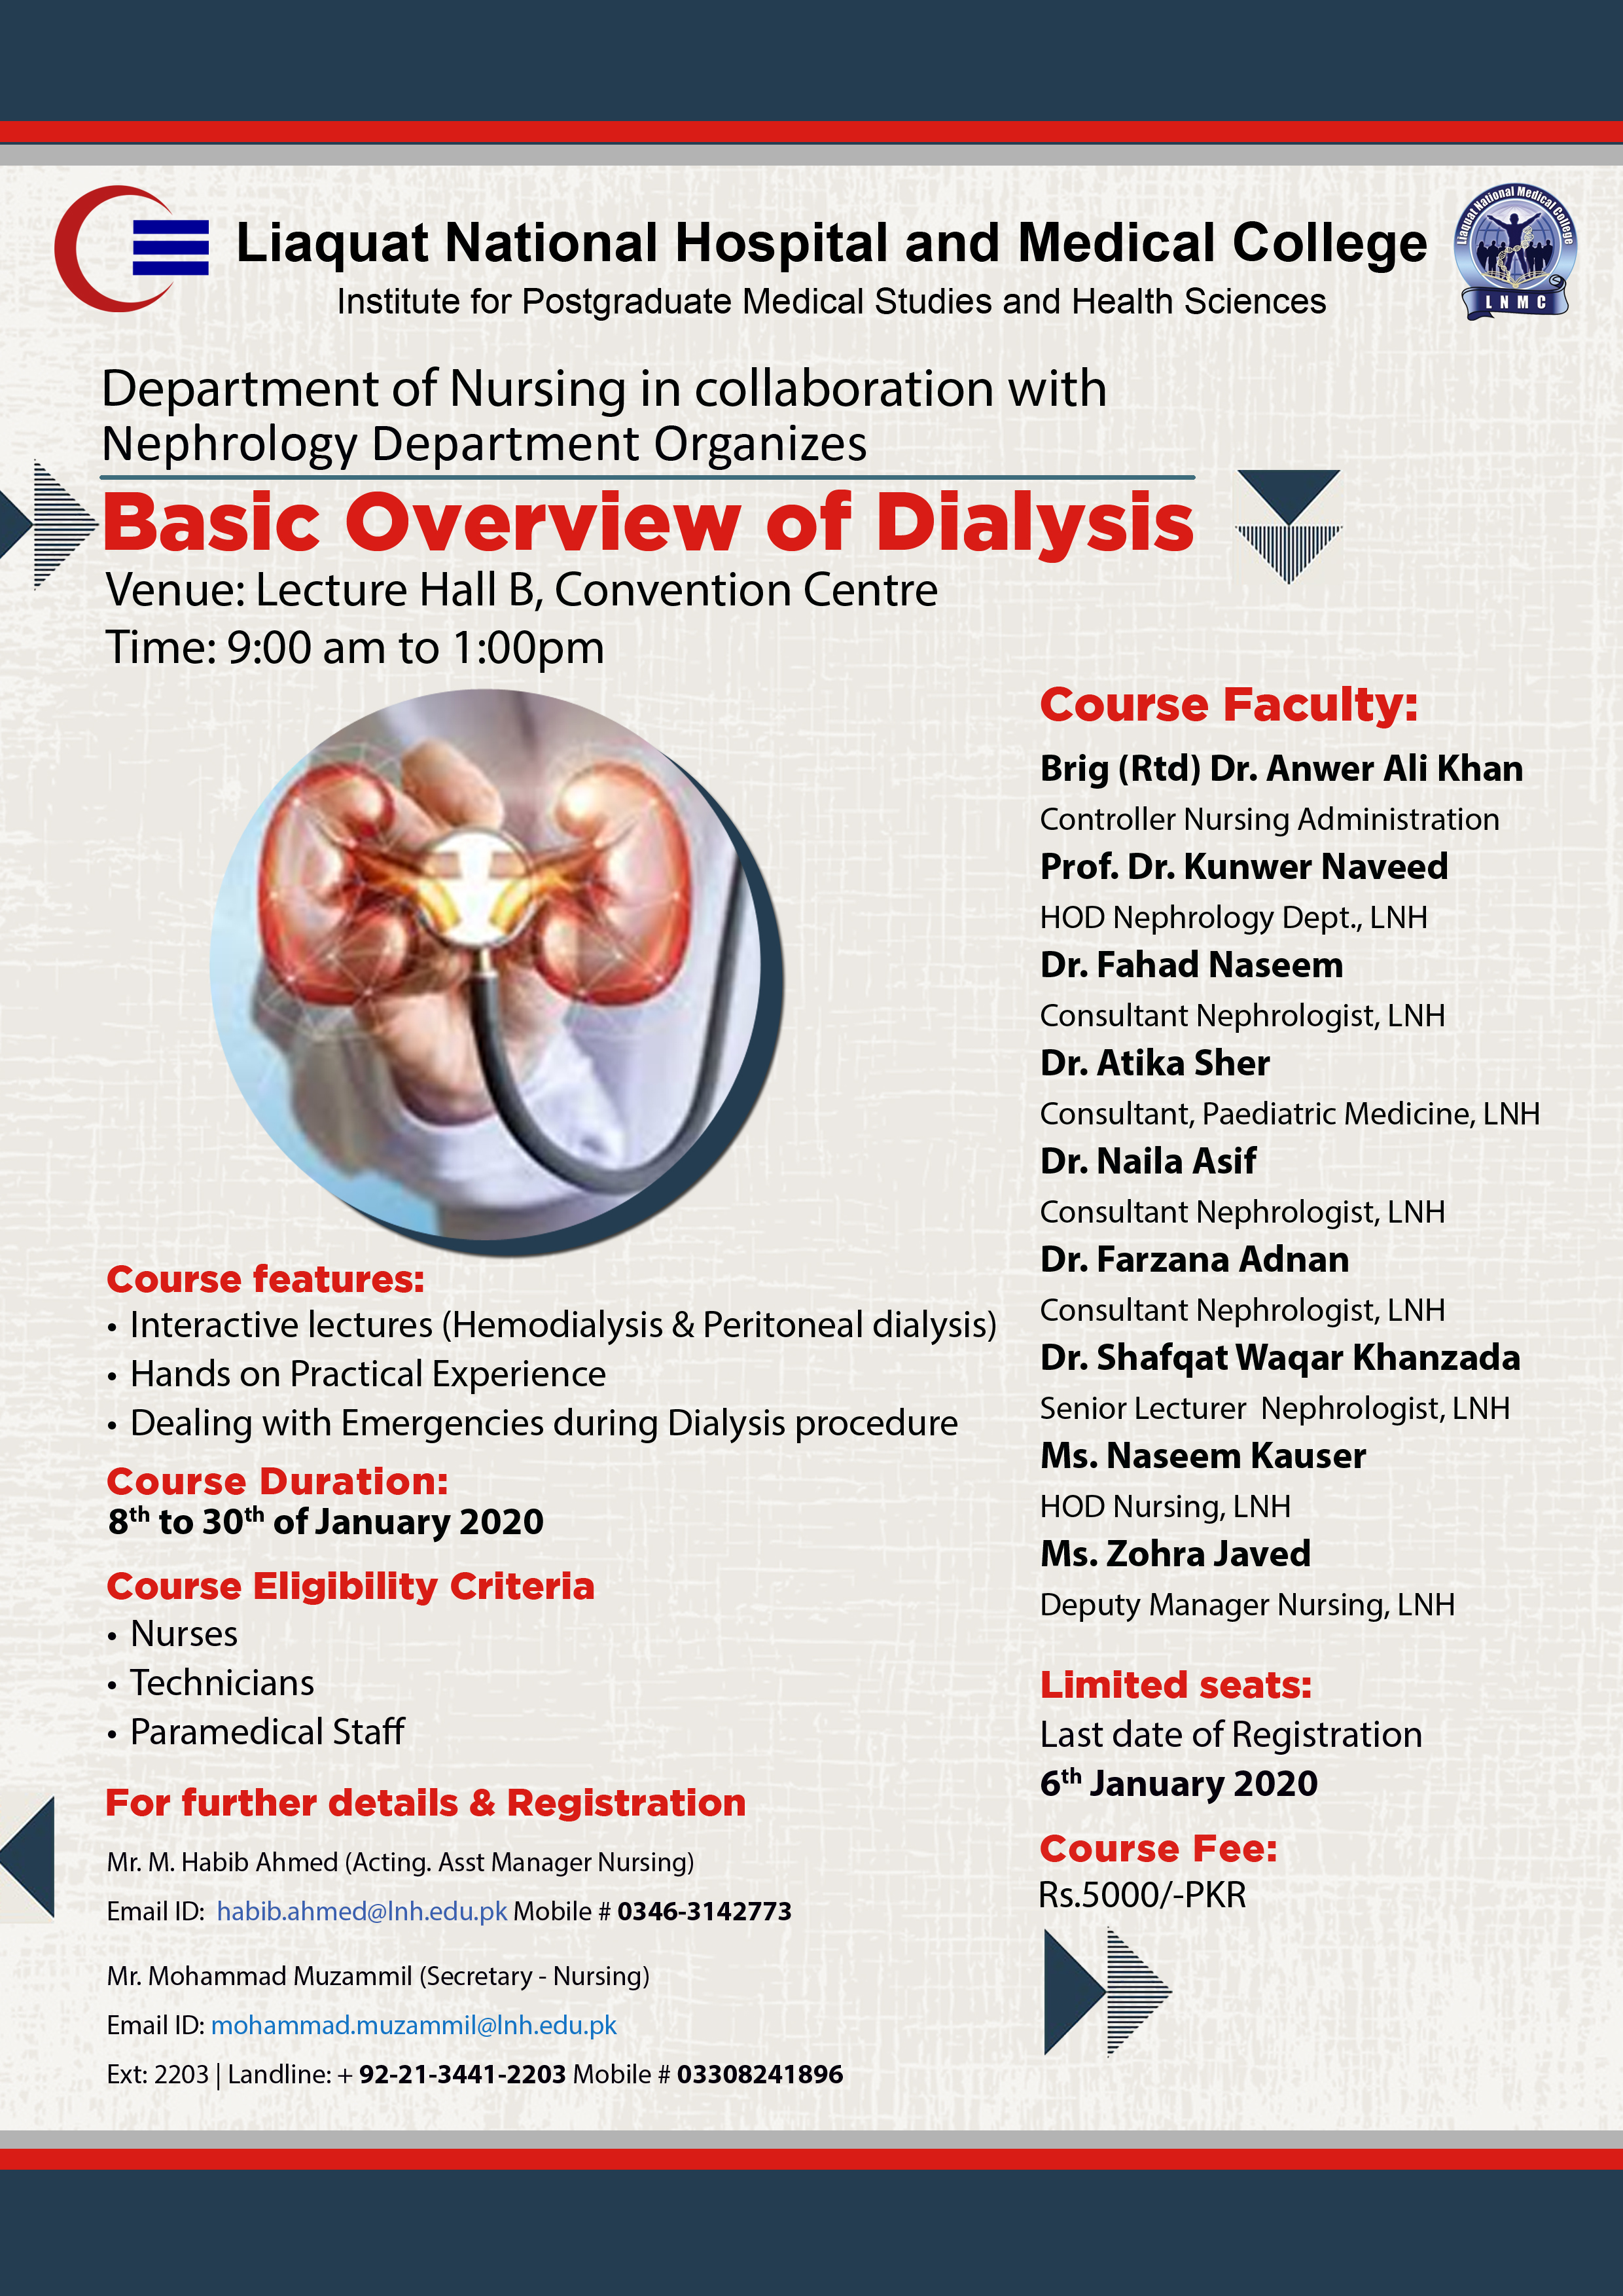 Basic Overview of Dialysis